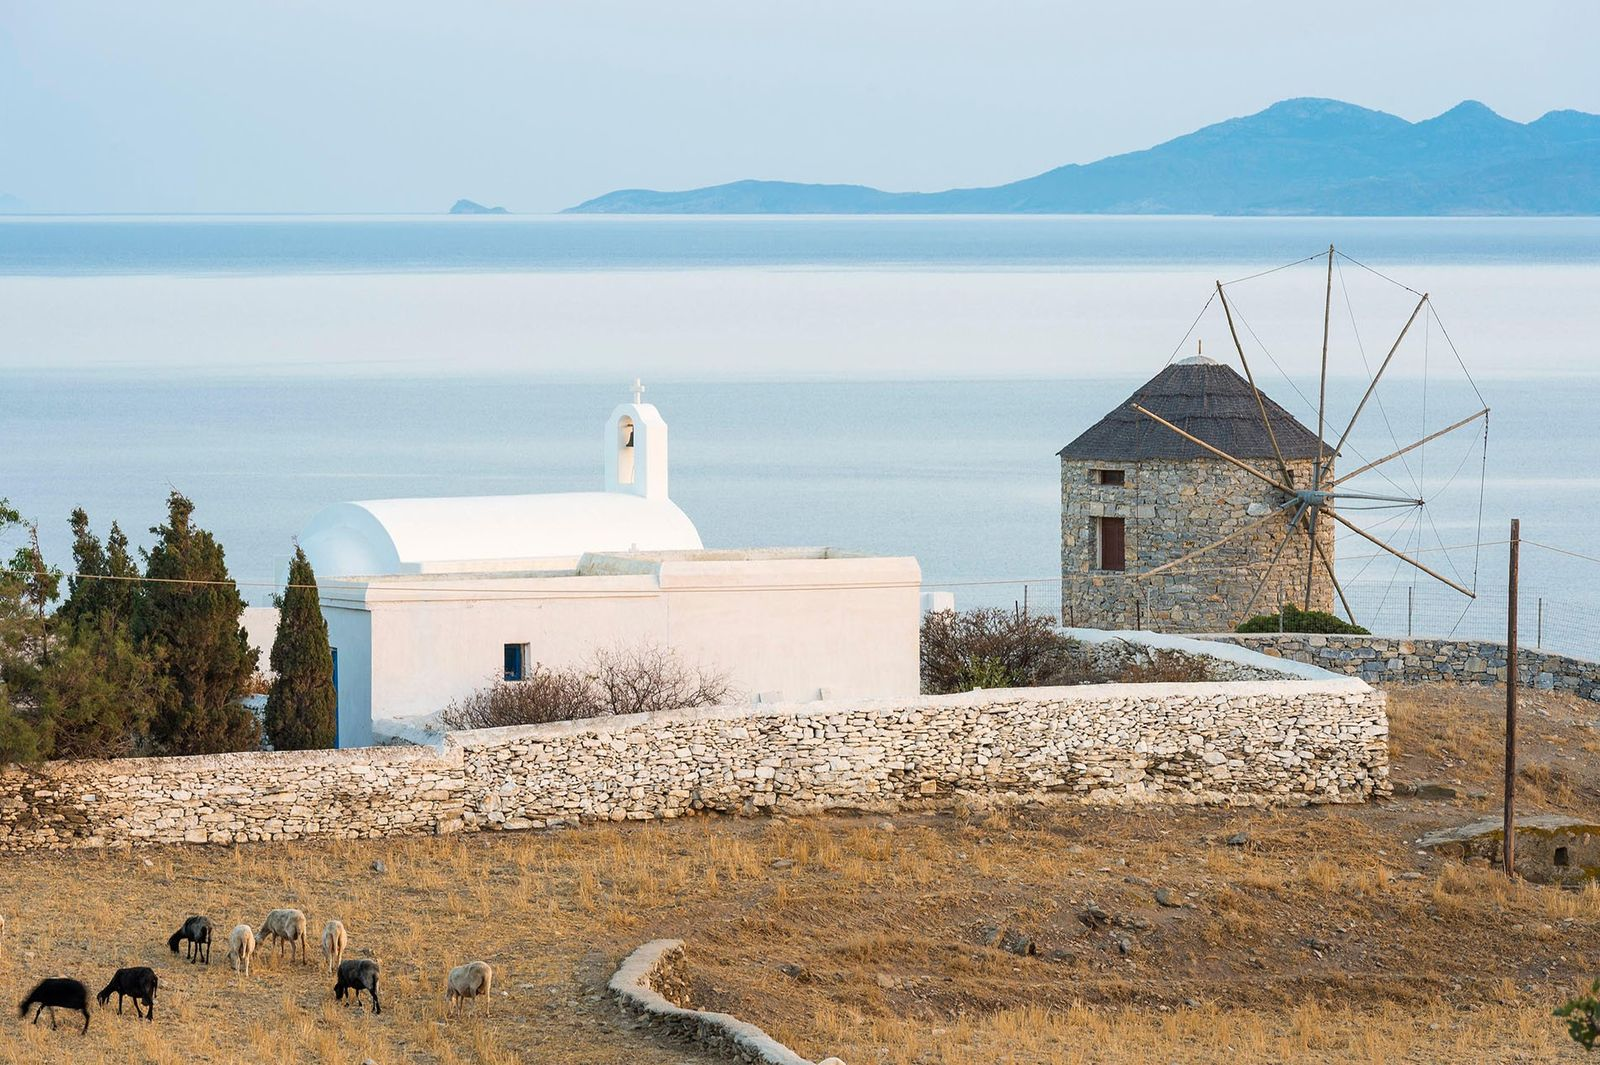 Schinoussa's undulating hills make it ideal for hiking, with views stretching out across the Aegean.